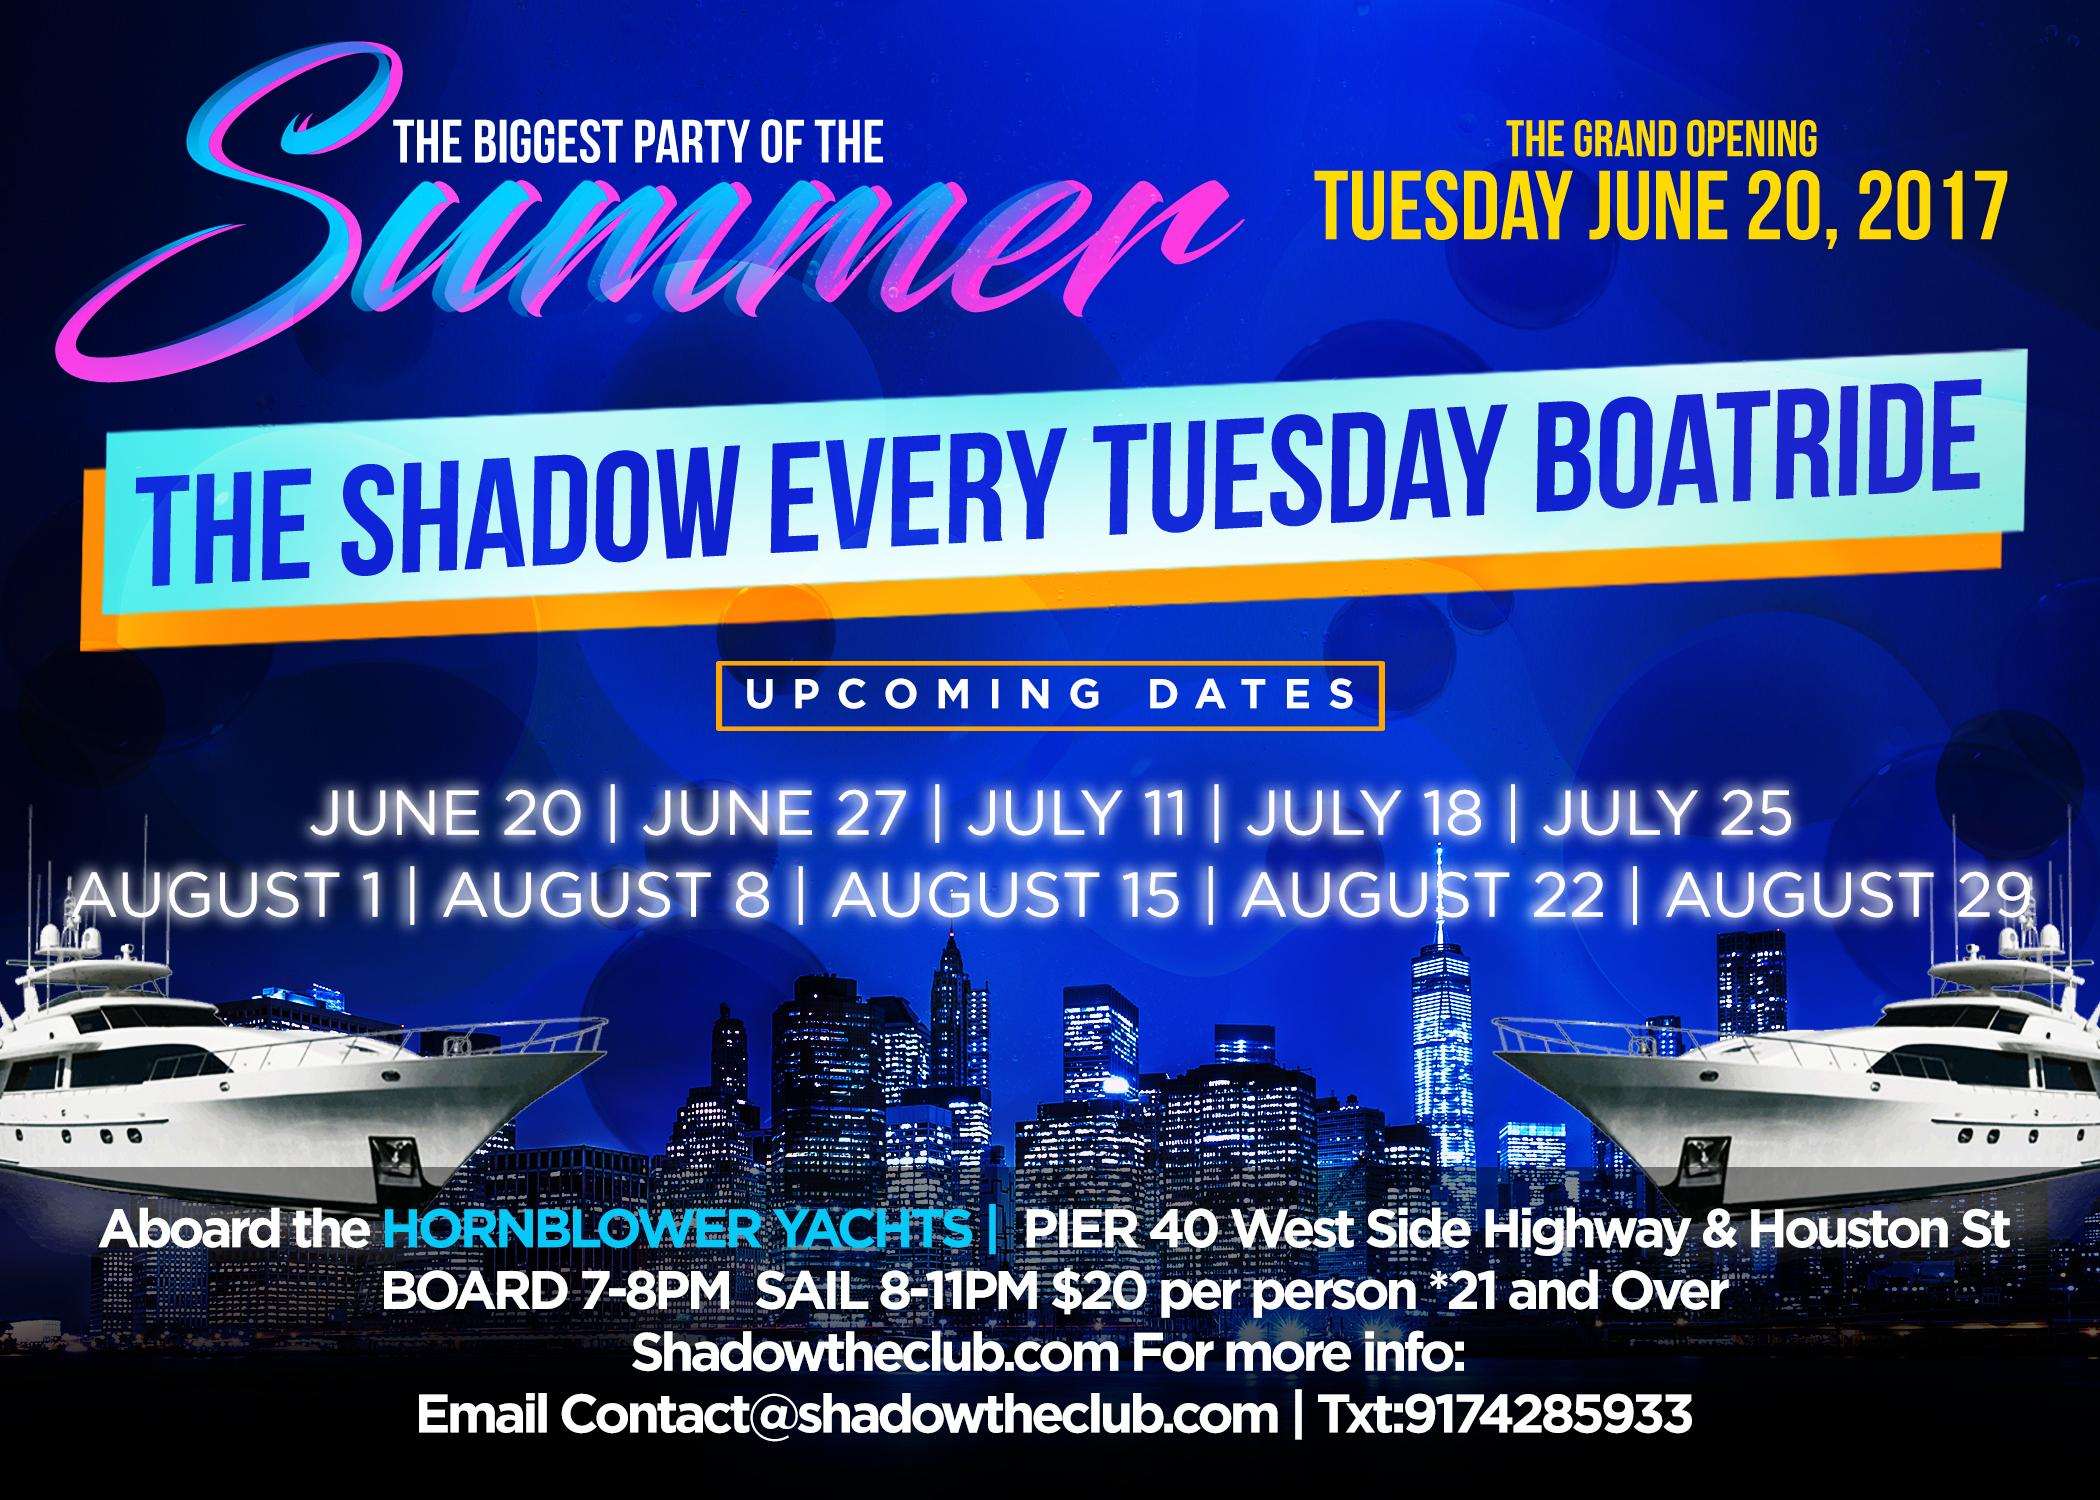 GRAND OPENING of the SHADOW BOATRIDE